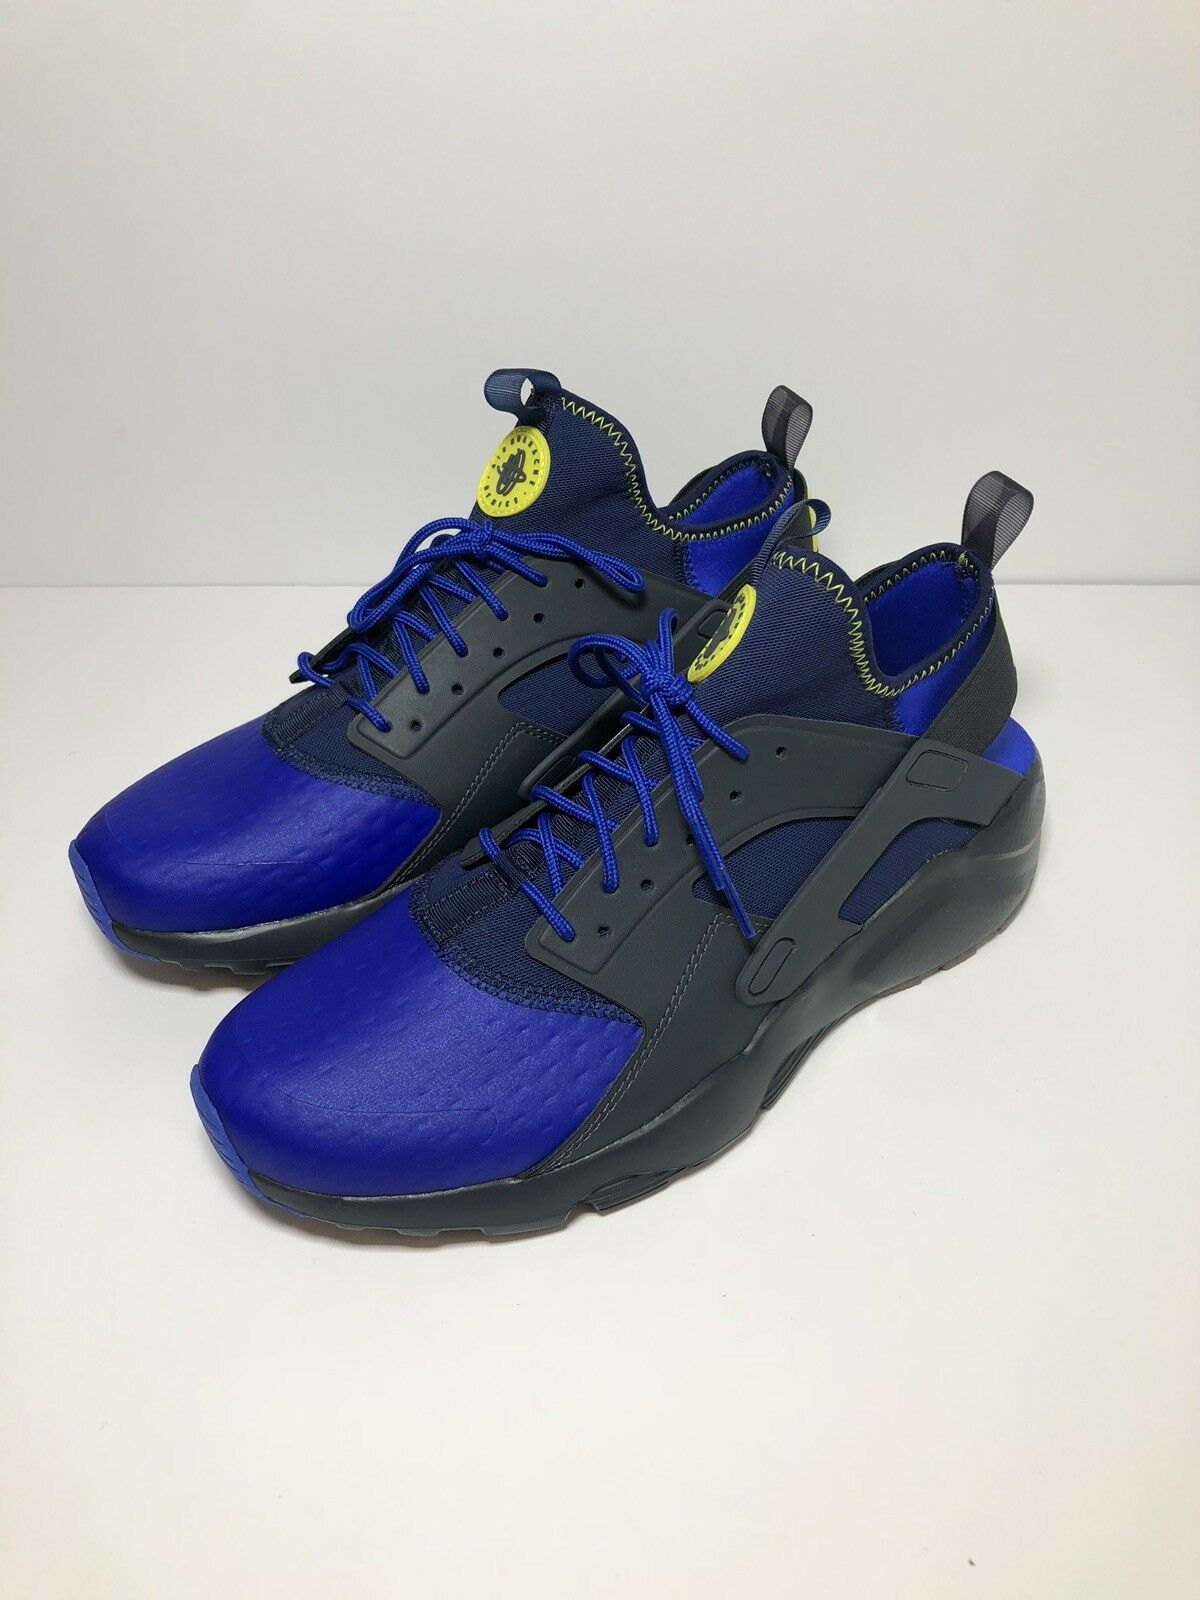 Nike Air Huarache Run Ultra SE Men blueee Black shoes 875841-001 Size 10.5